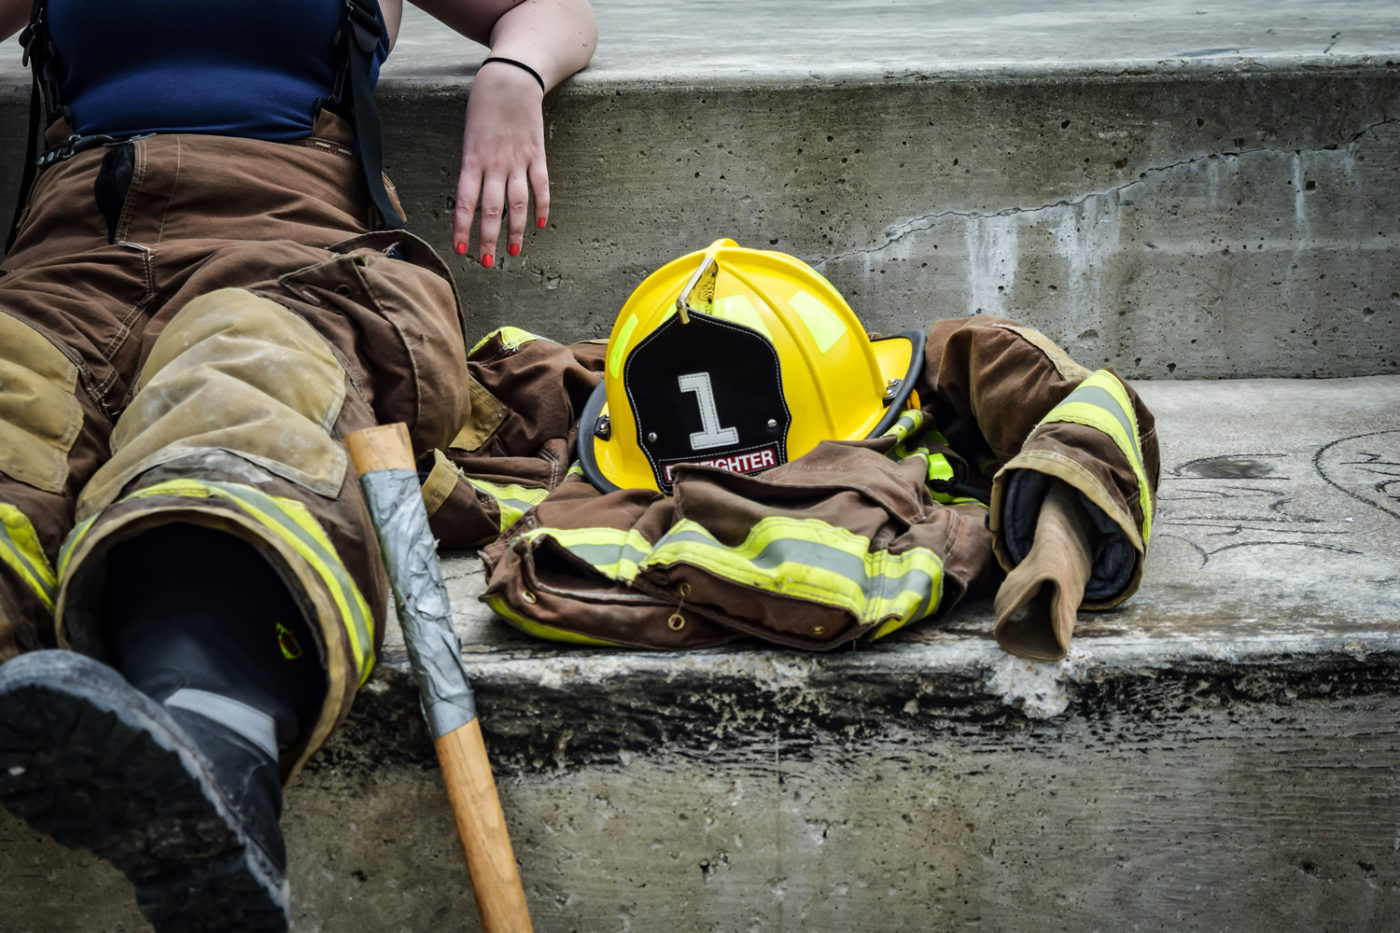 Fire fighter resting